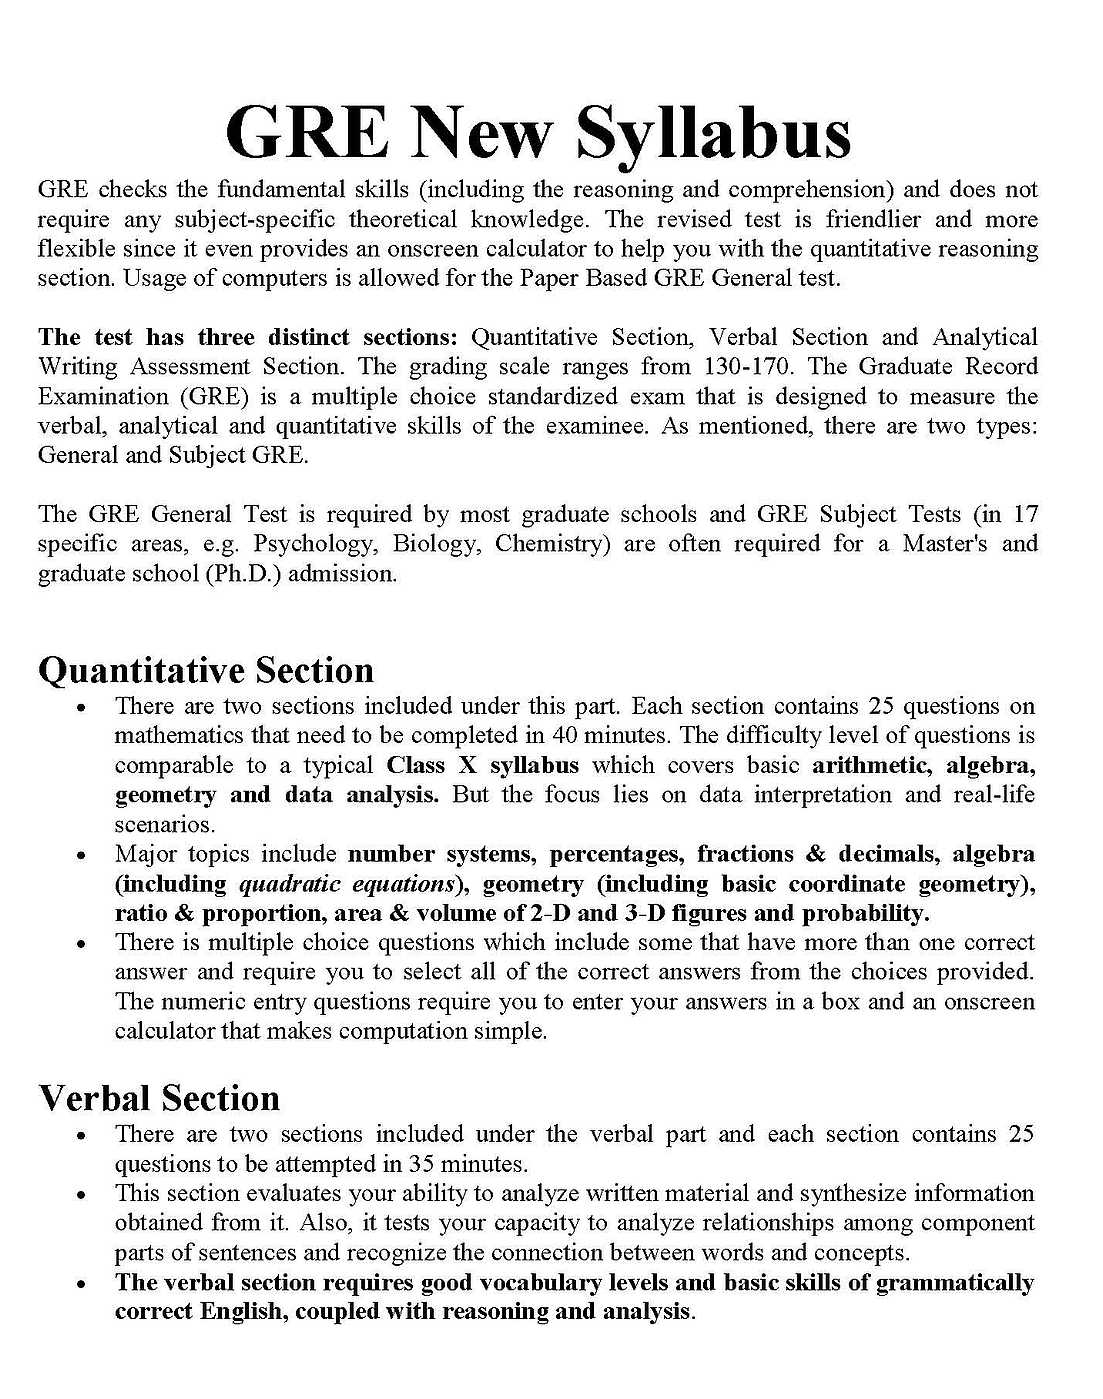 PDF Of GRE Syllabus - 2018 2019 Student Forum